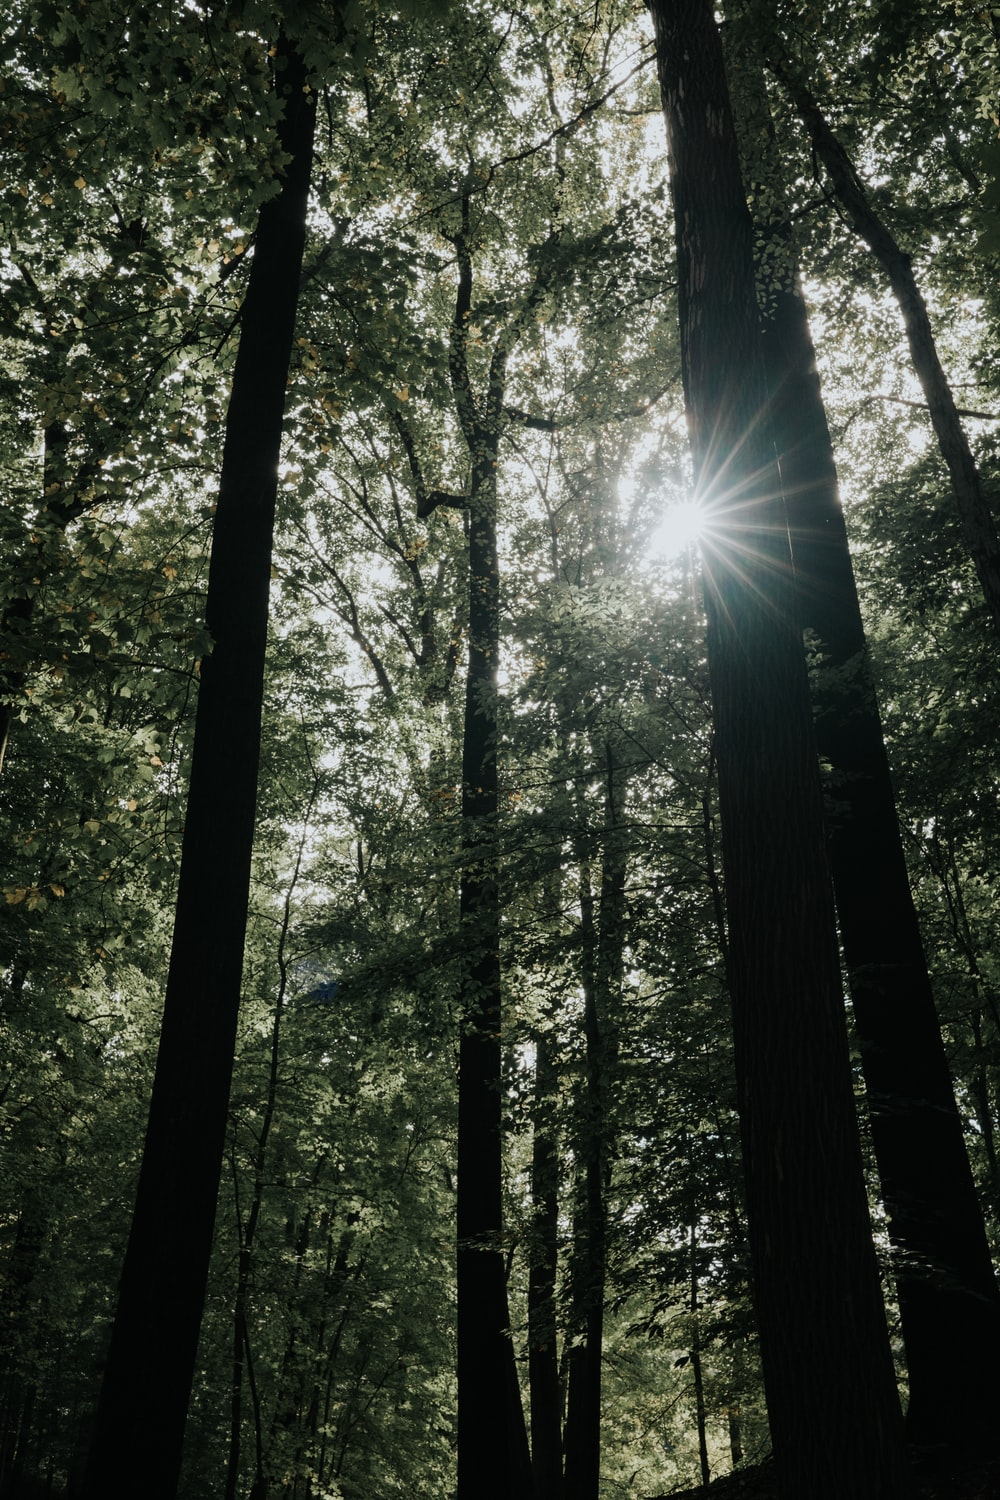 light through forest trees